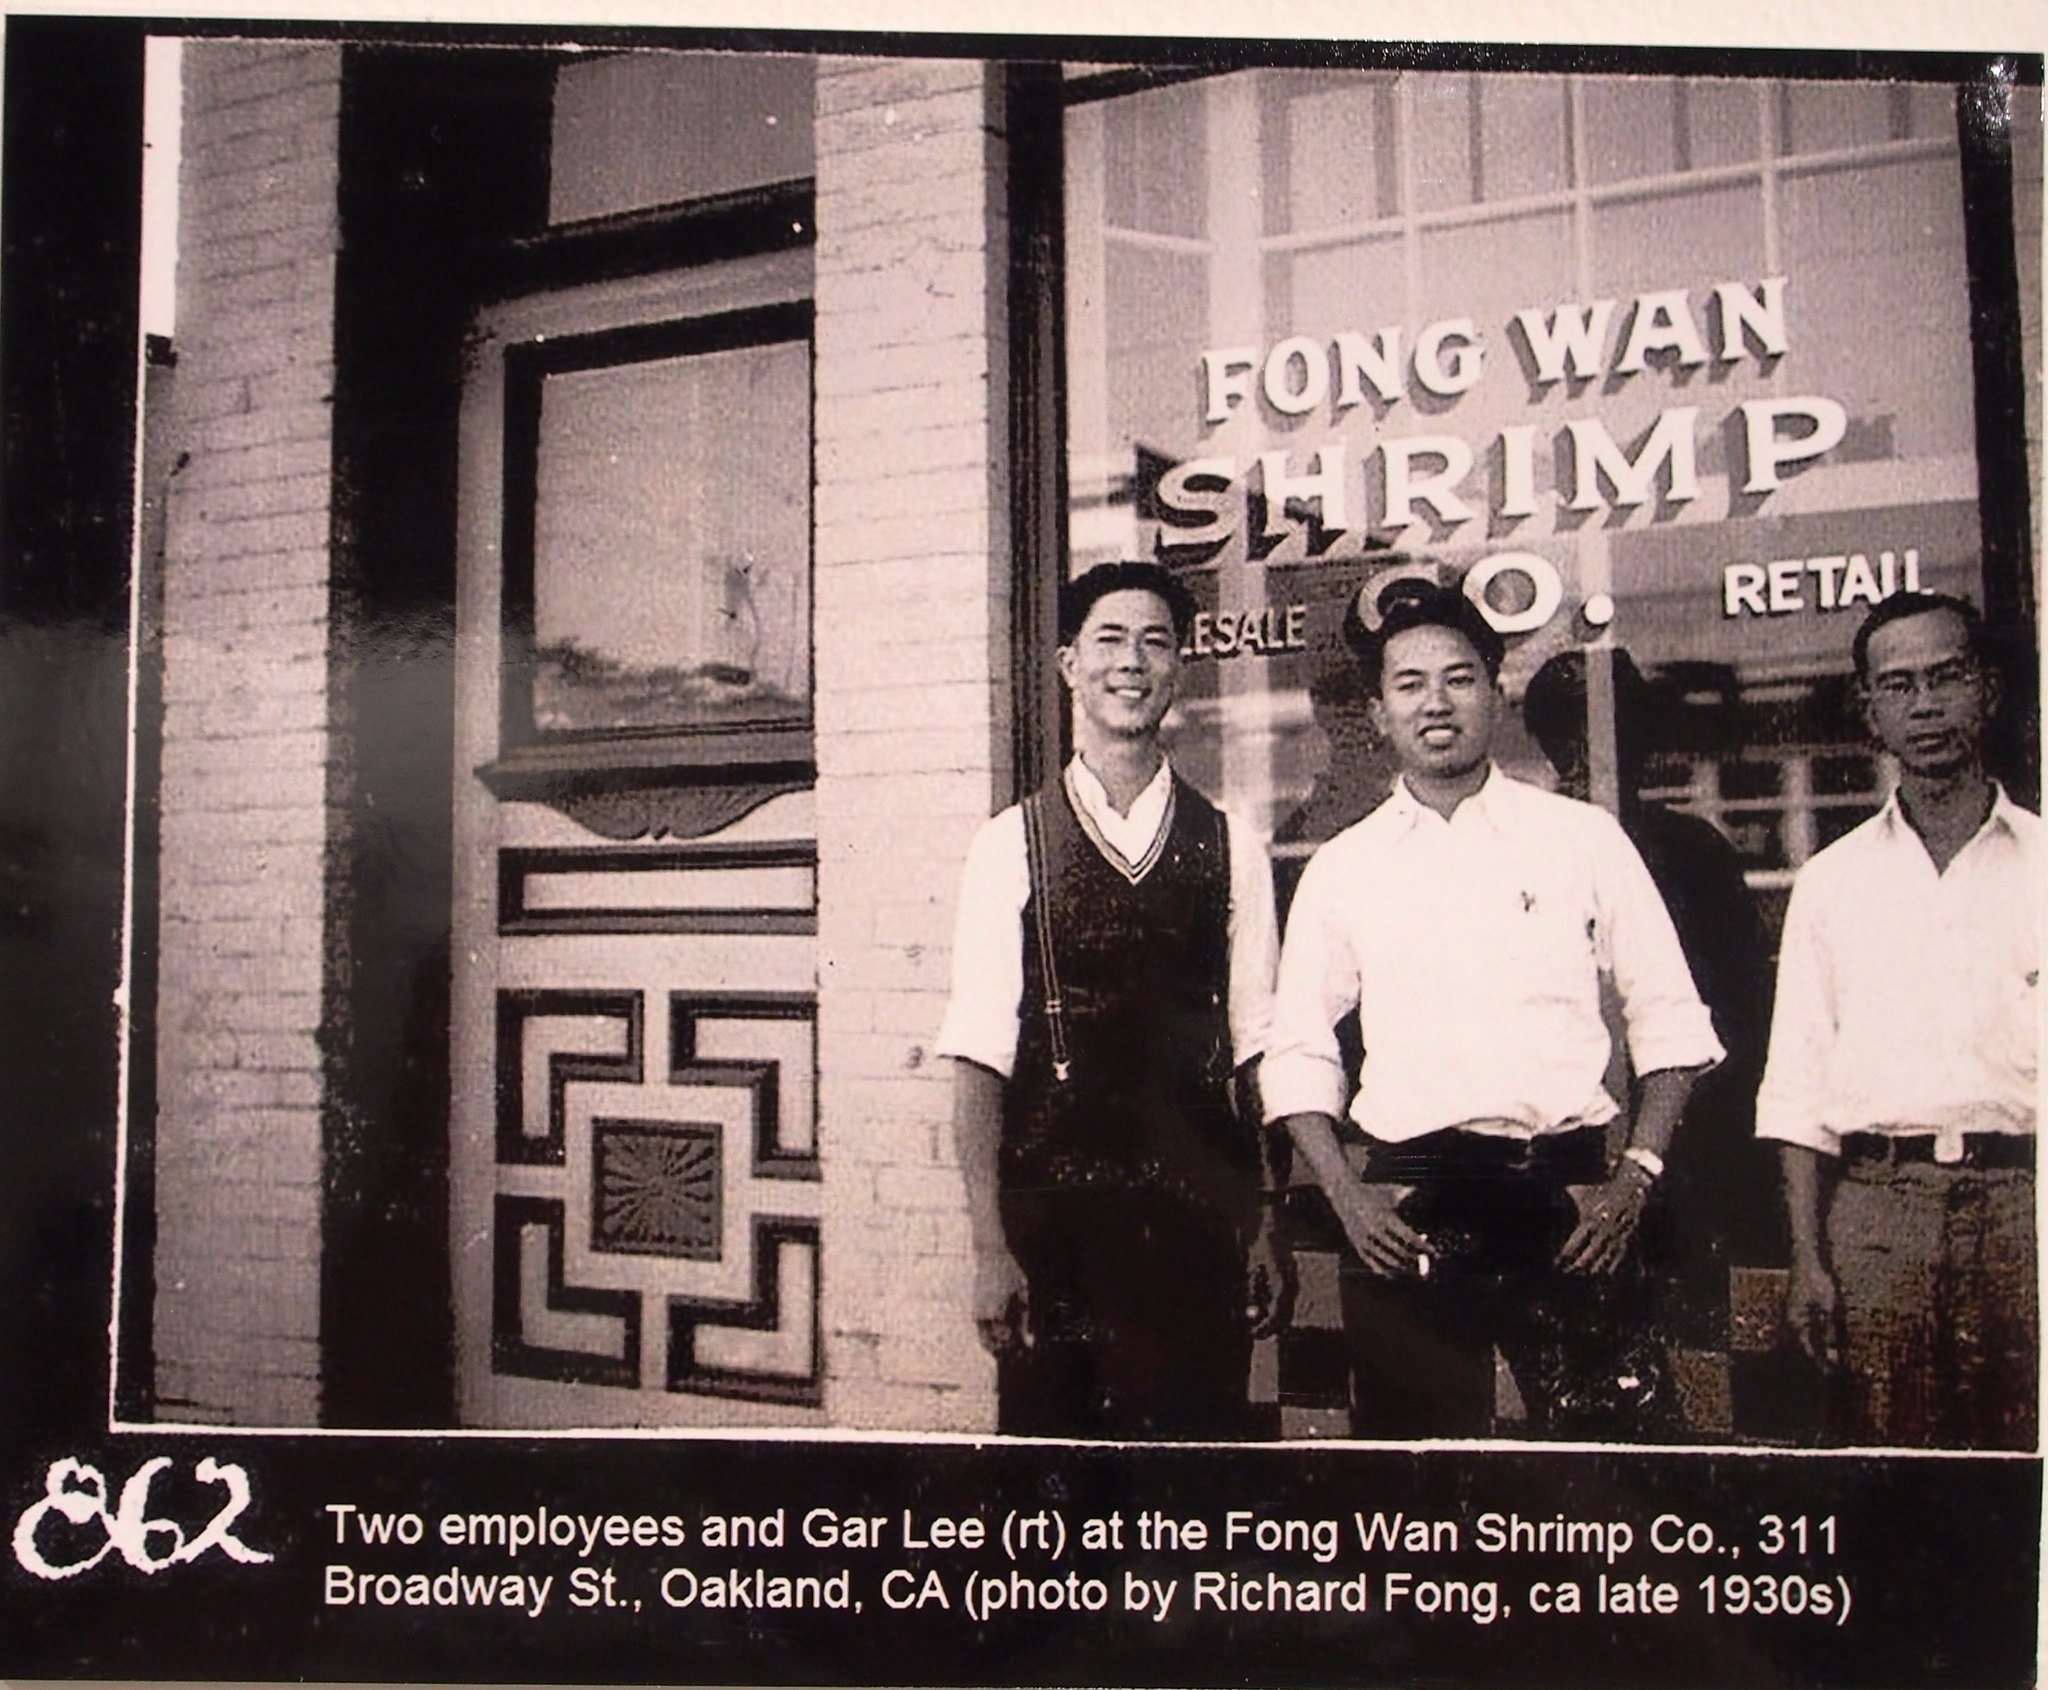 fong wan shrimp co 1930s